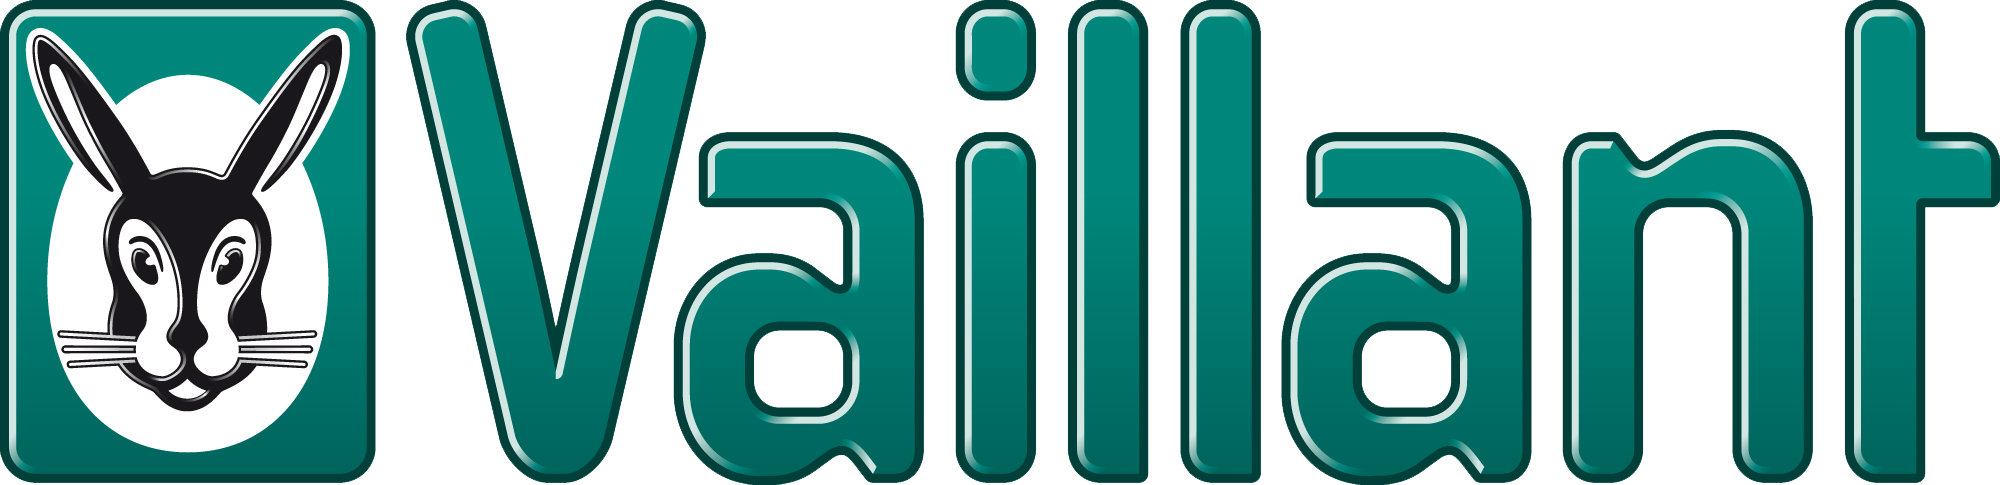 vaillant-logotipo